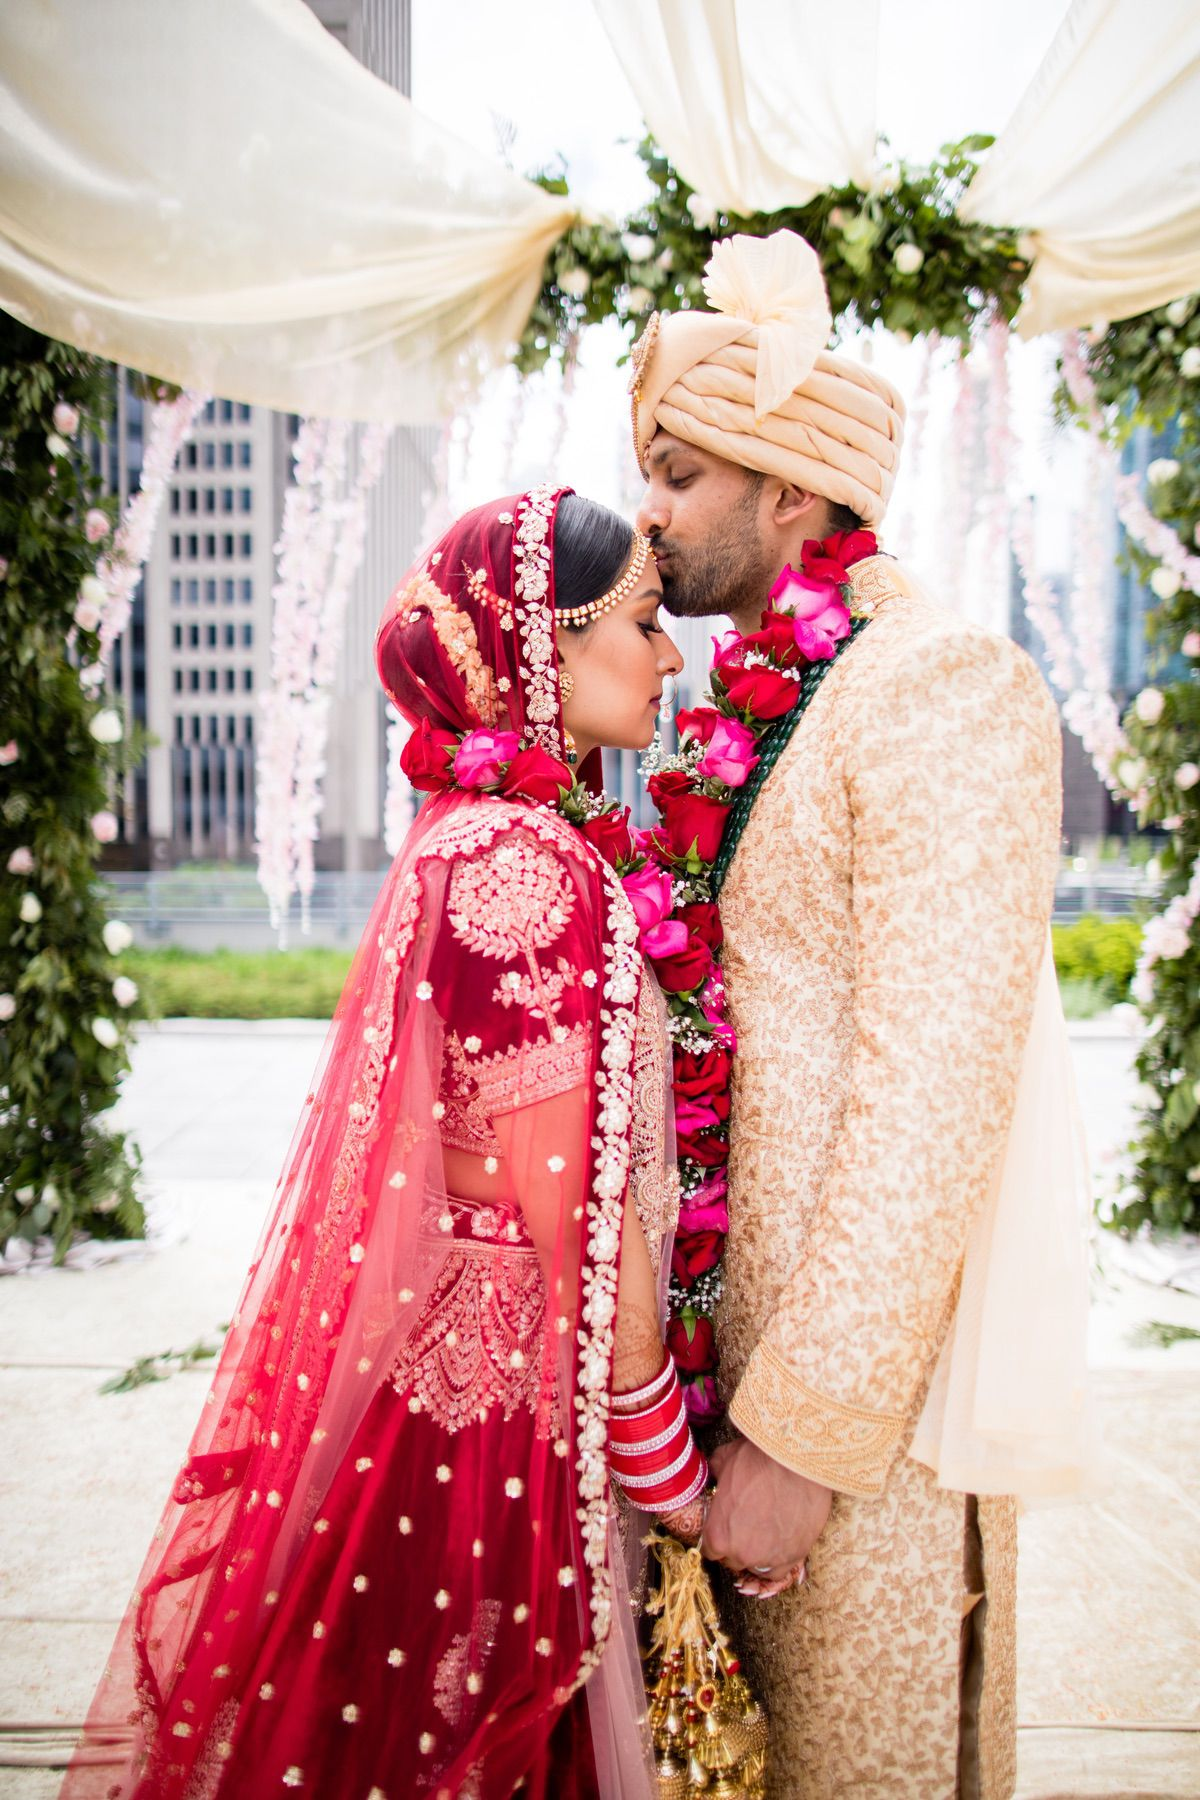 Le_Cape_Weddings_-_Serena_-_Chicago_South_Asian_Wedding_-_Family_and_Friends_AM_--77.jpg